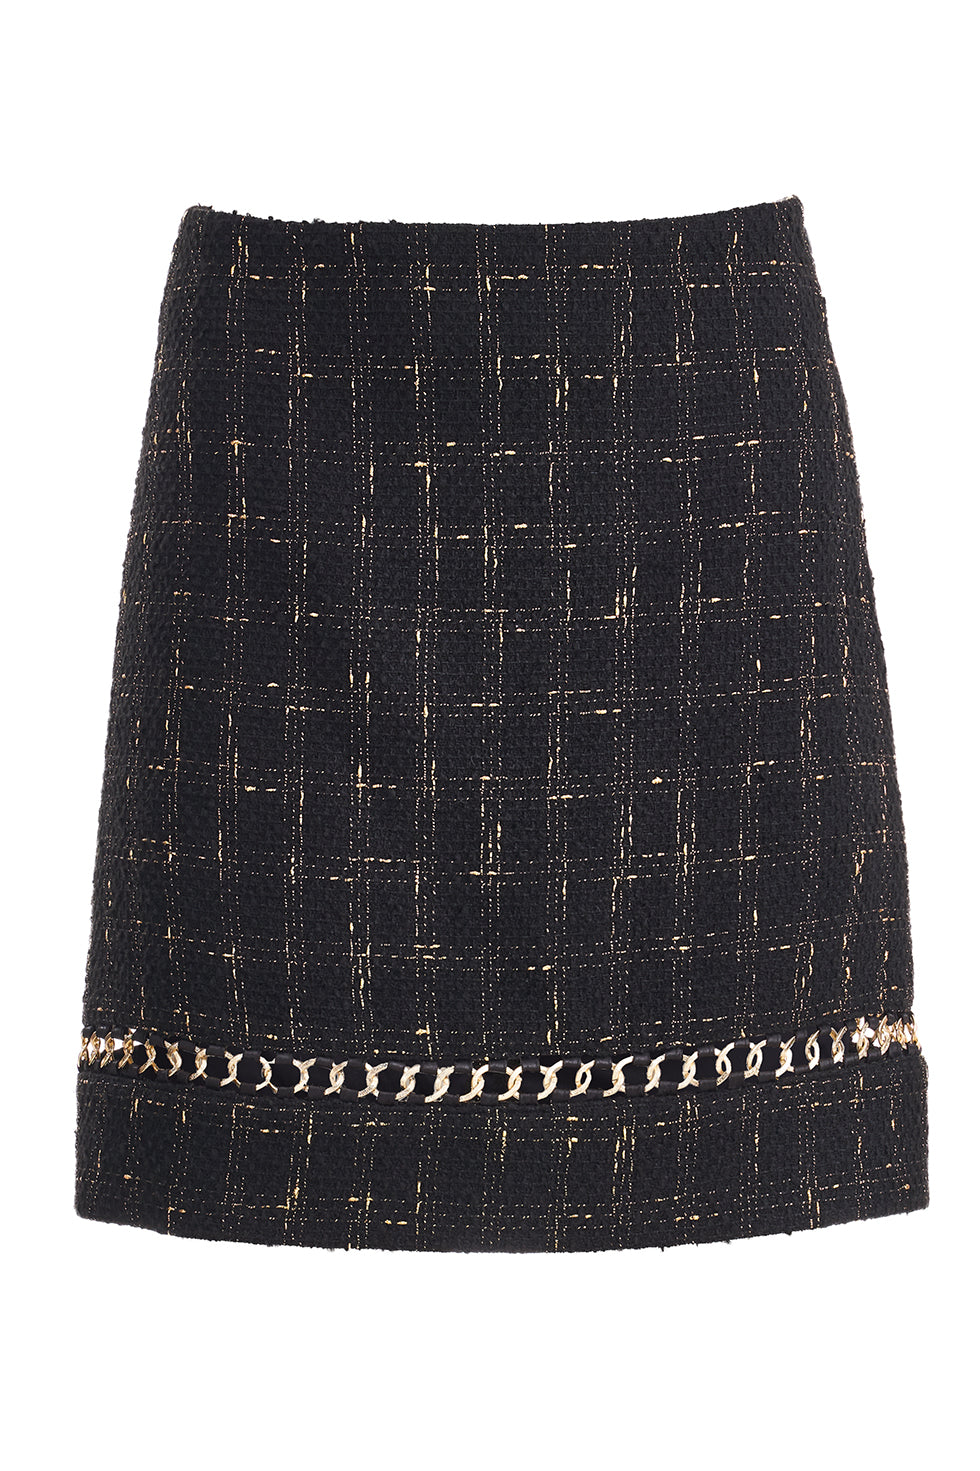 Helga Chain Mini Skirt